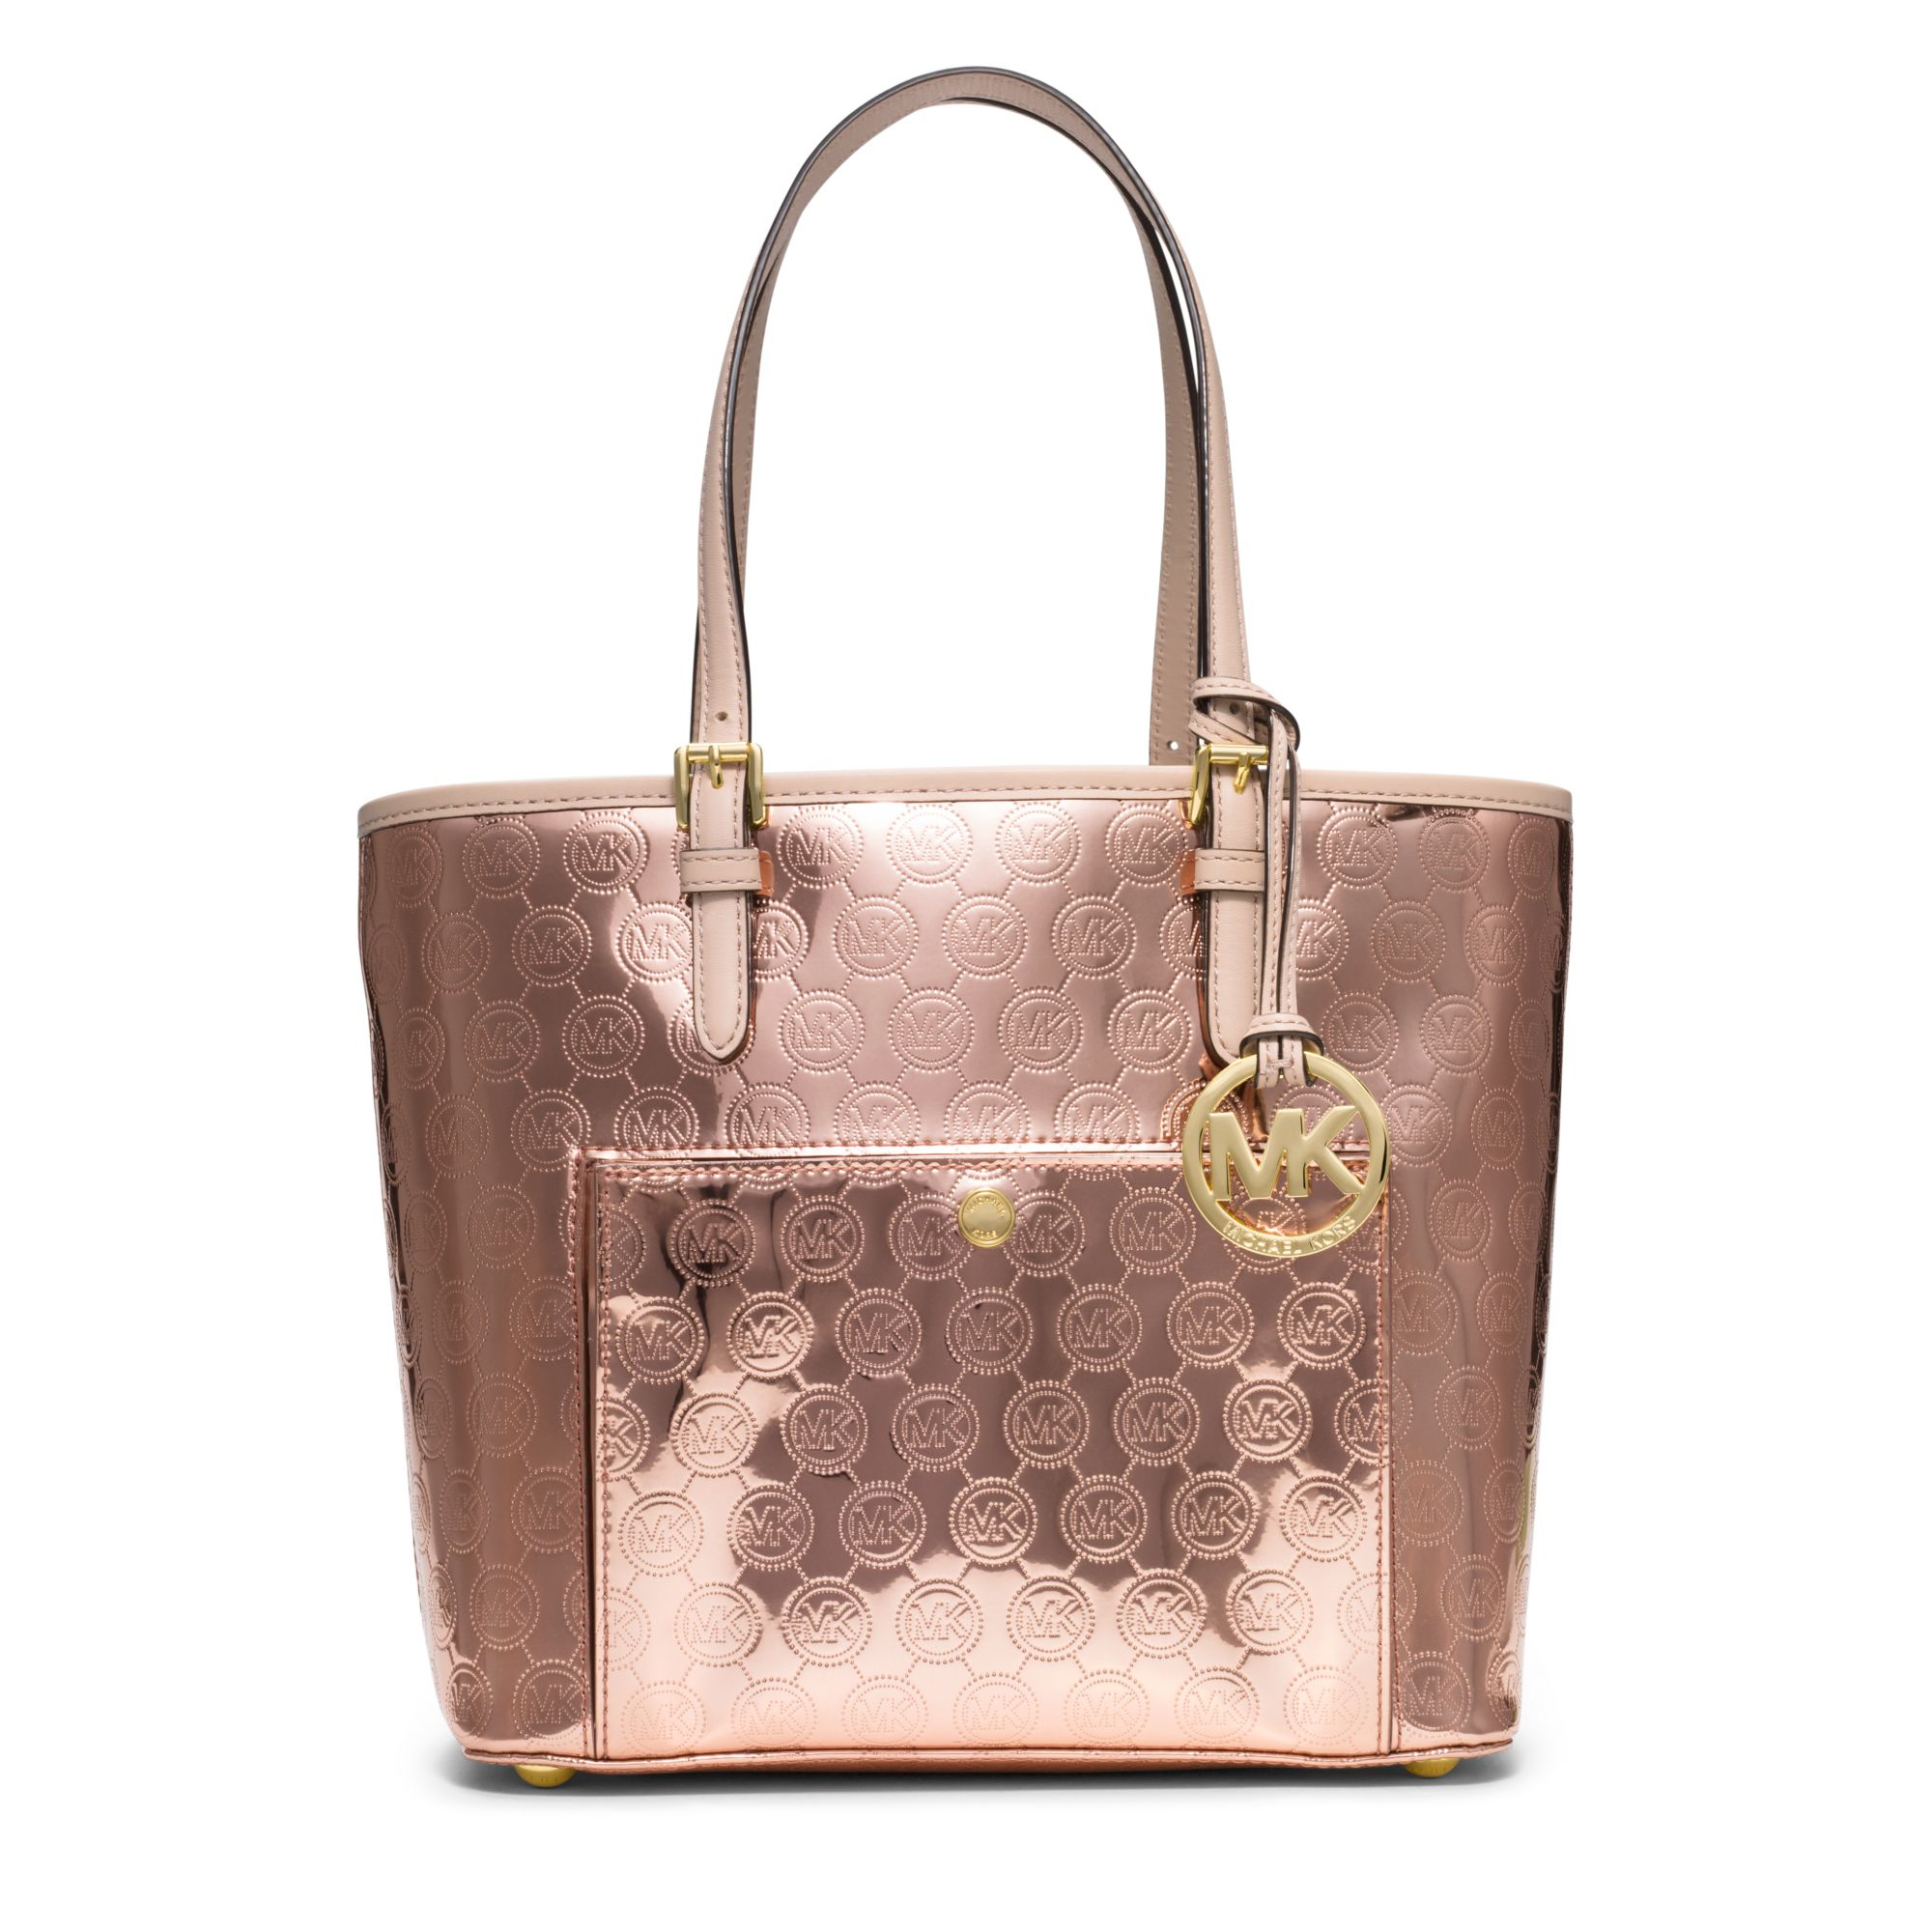 michael kors jet set medium monogram tote in gold rose gold lyst. Black Bedroom Furniture Sets. Home Design Ideas